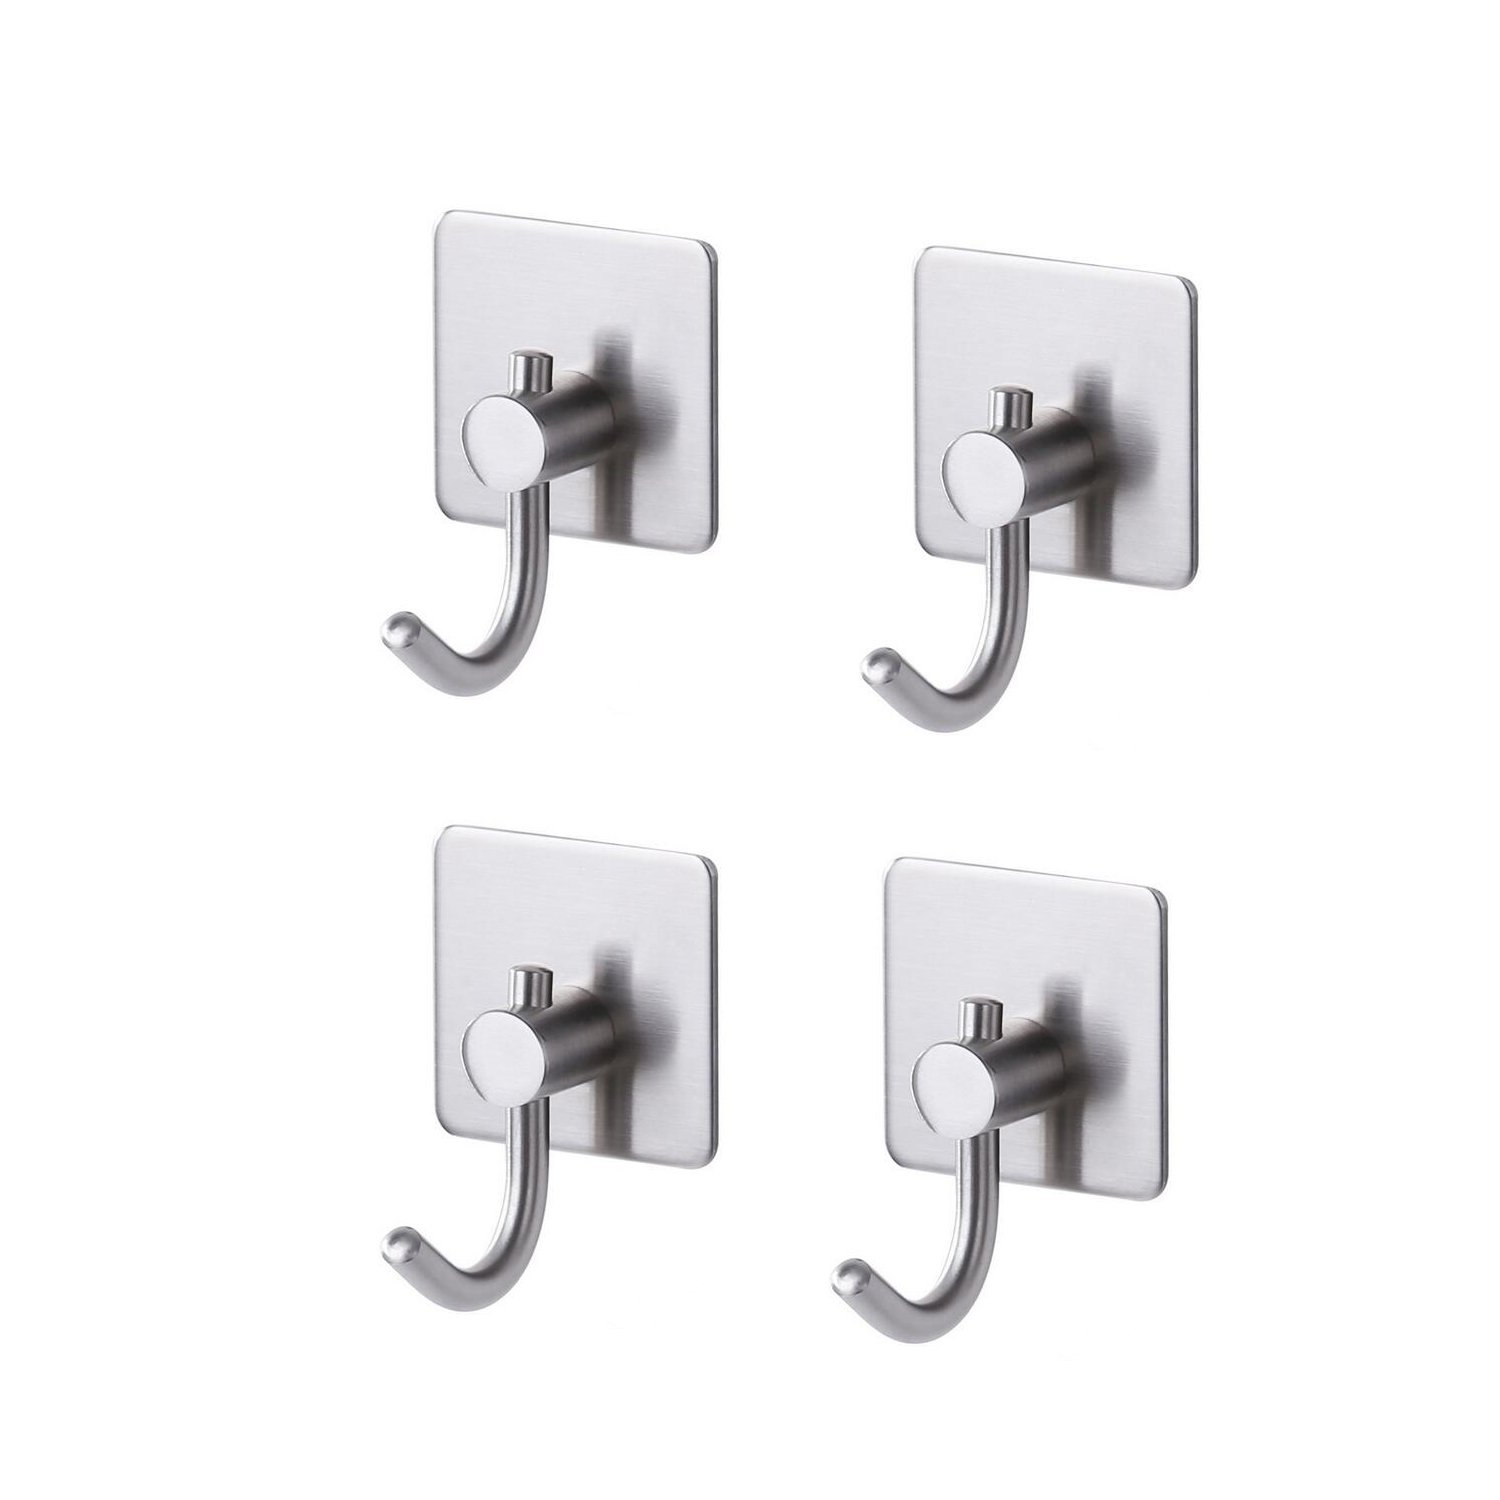 Togu SUS 304 Stainless Steel Self Adhesive Hook Heavy Duty Wall Hooks Nail-Free Waterproof Stick On Bathroom Kitchen Door For Keys Hats Towel Coats, Brushed Finish,4pcs by Togu